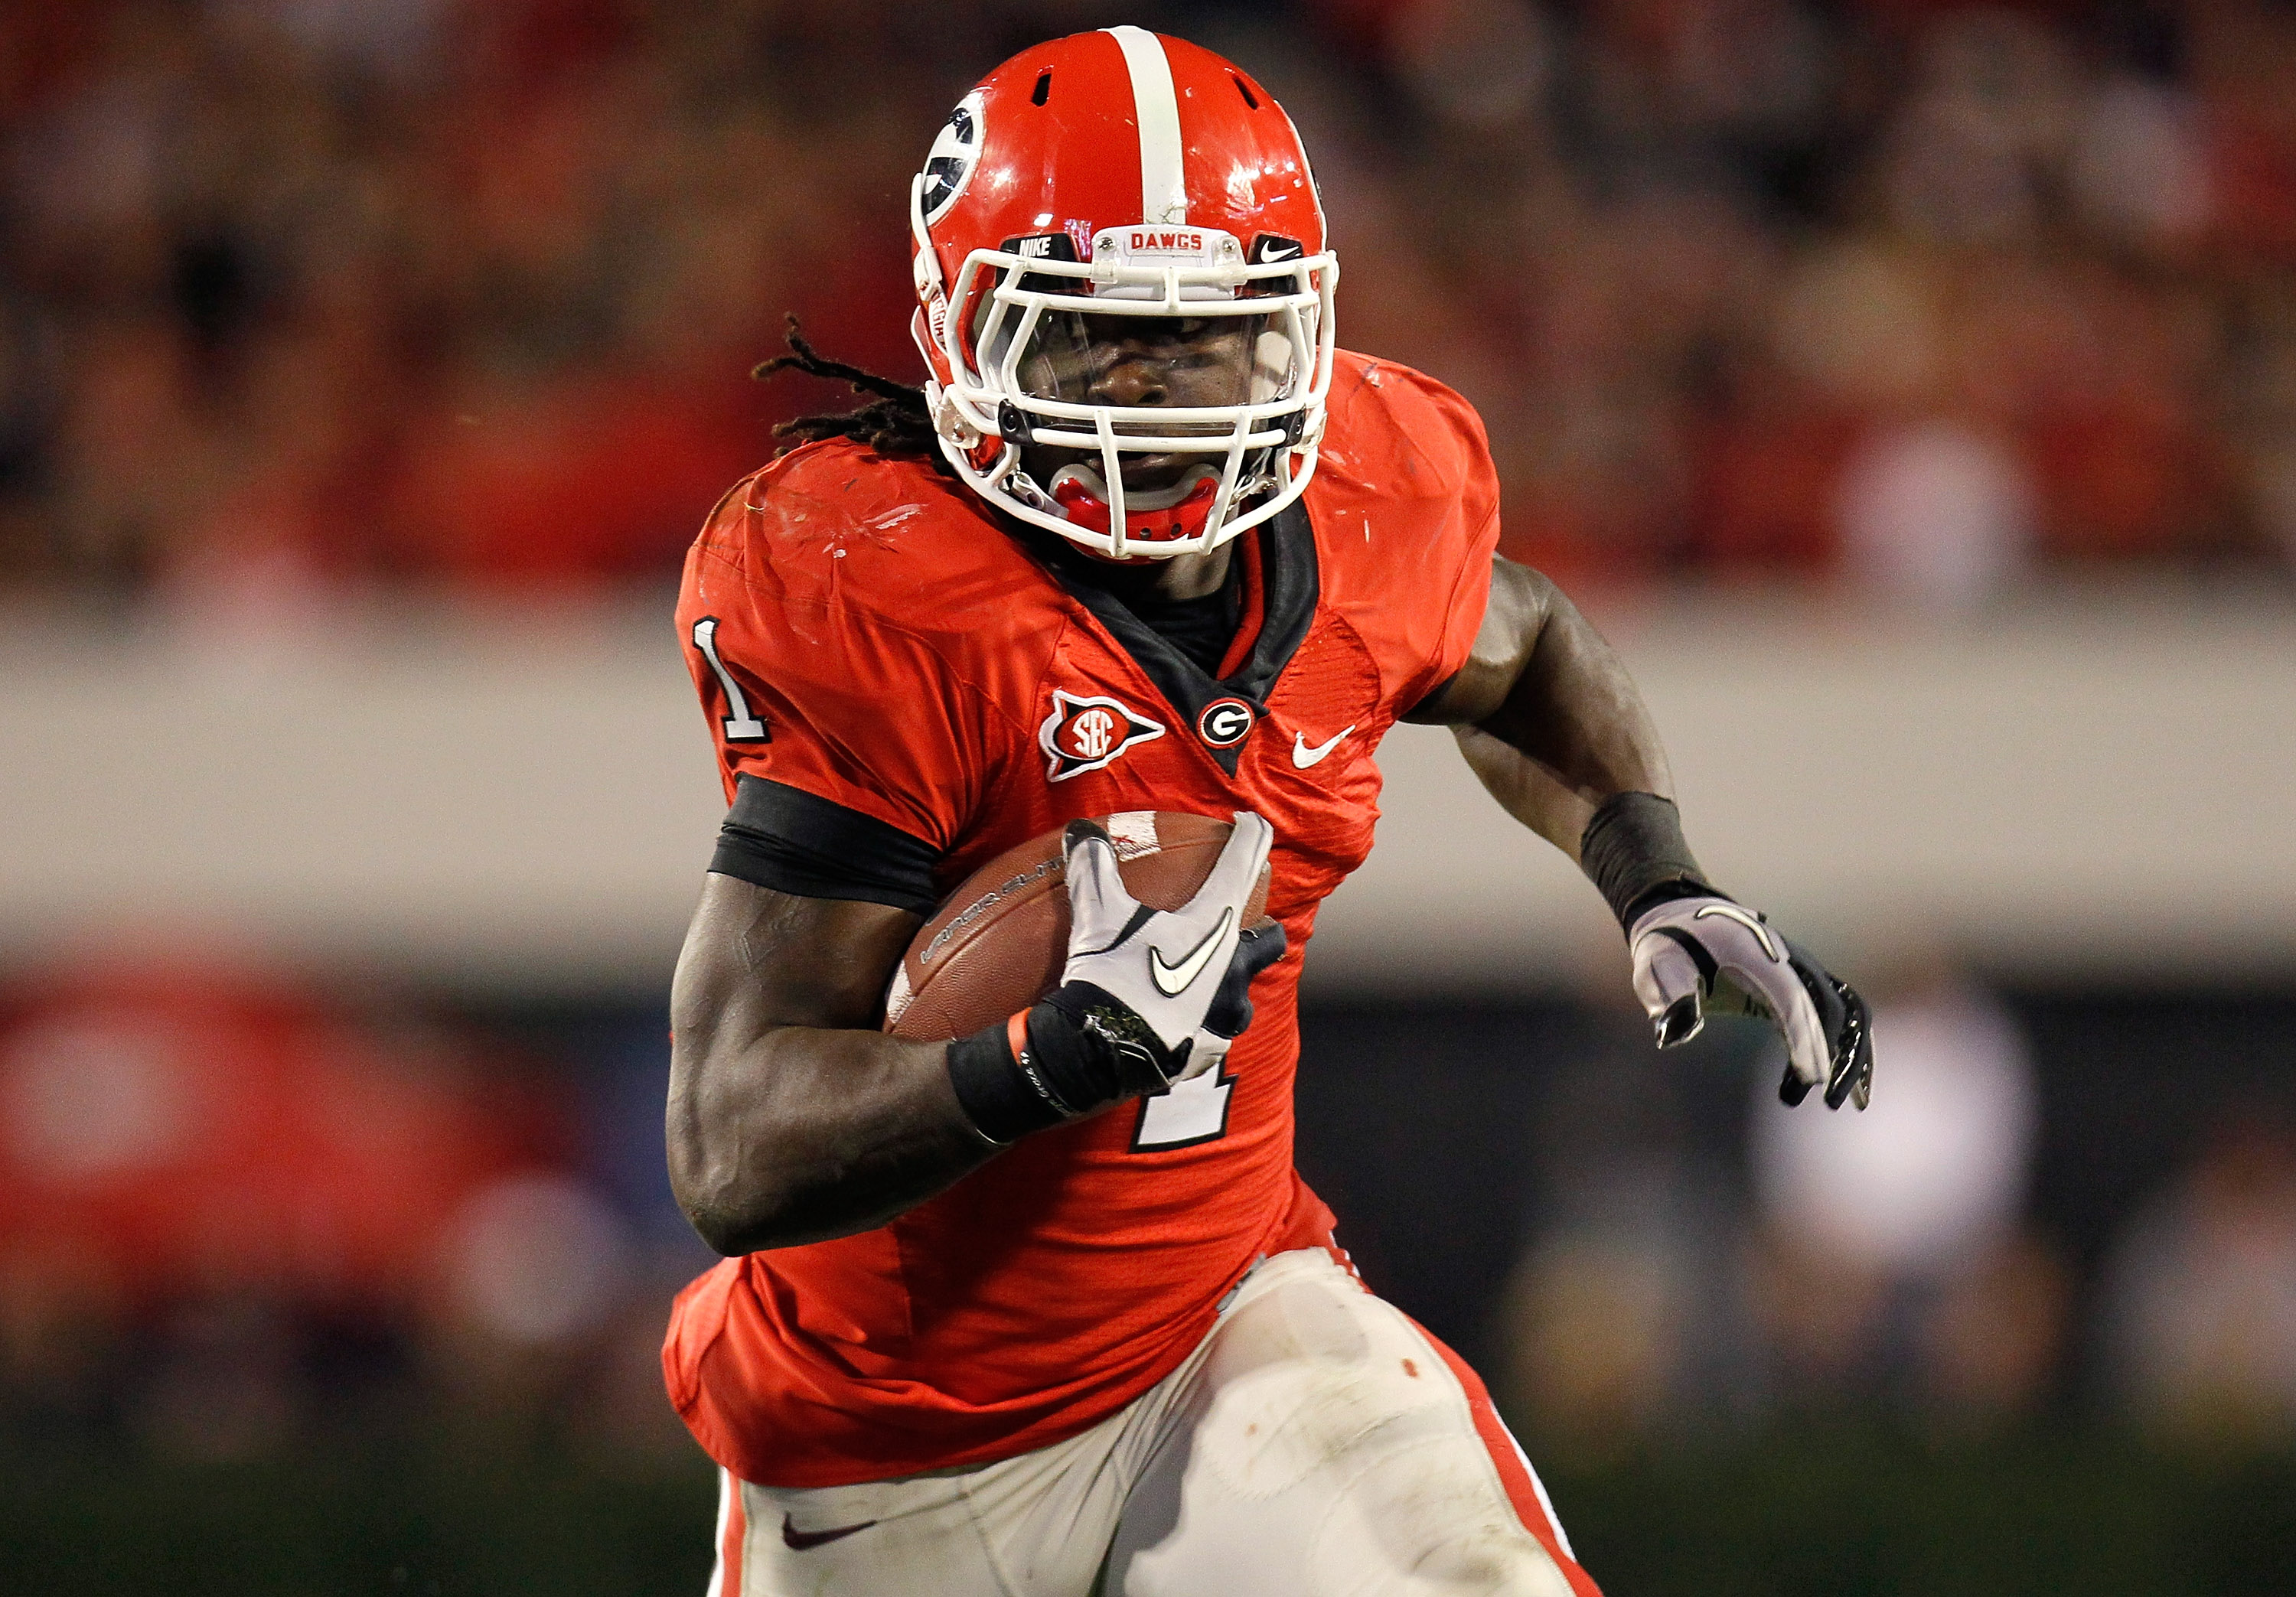 Isaiah Crowell's next stop is at Alabama State, a FCS school. (Getty Images)